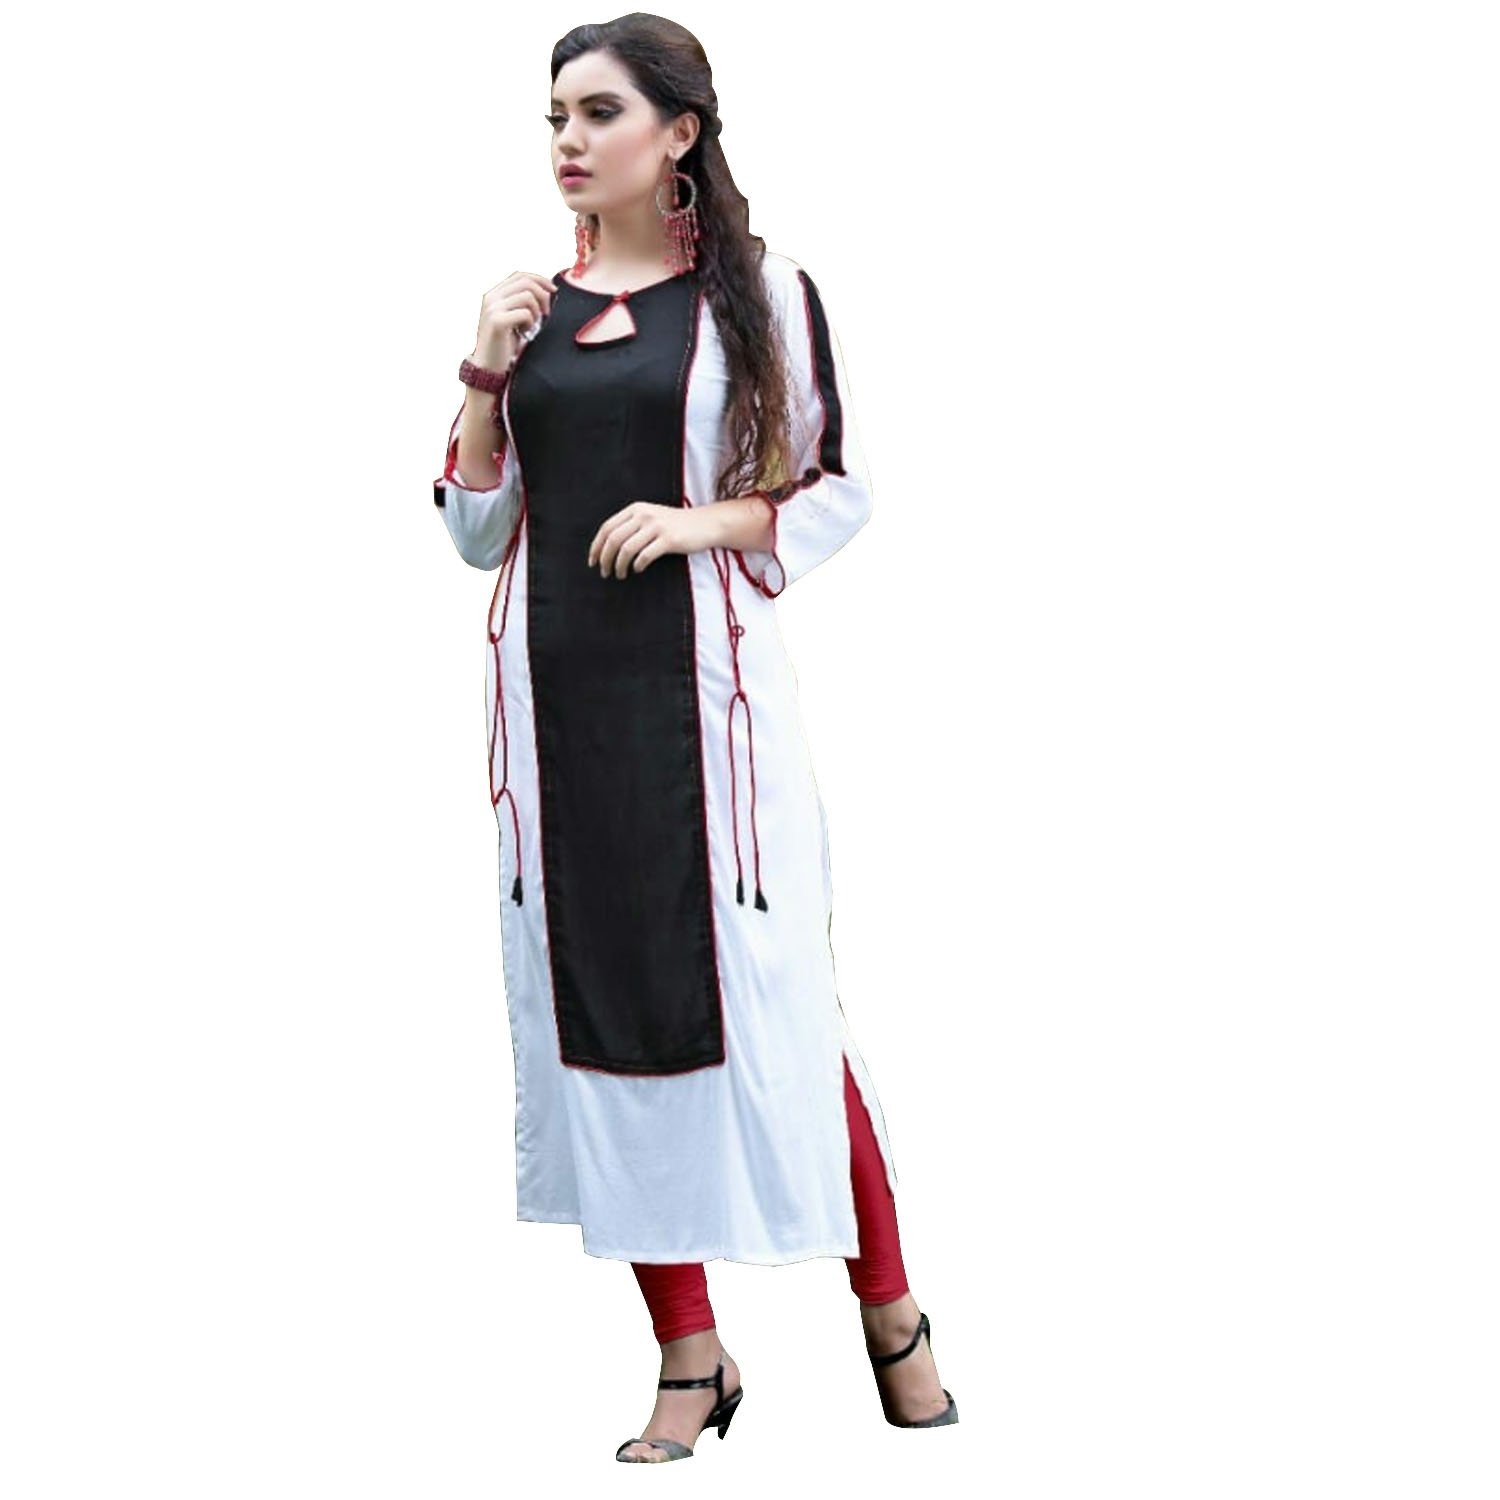 cc498d29 Indowestern stylish Kurti Women's Clothing Kurti For Women Latest Designer  Wear Kurti Collection In Latest Kurti Beautiful Bollywood Kurti For Women  ...